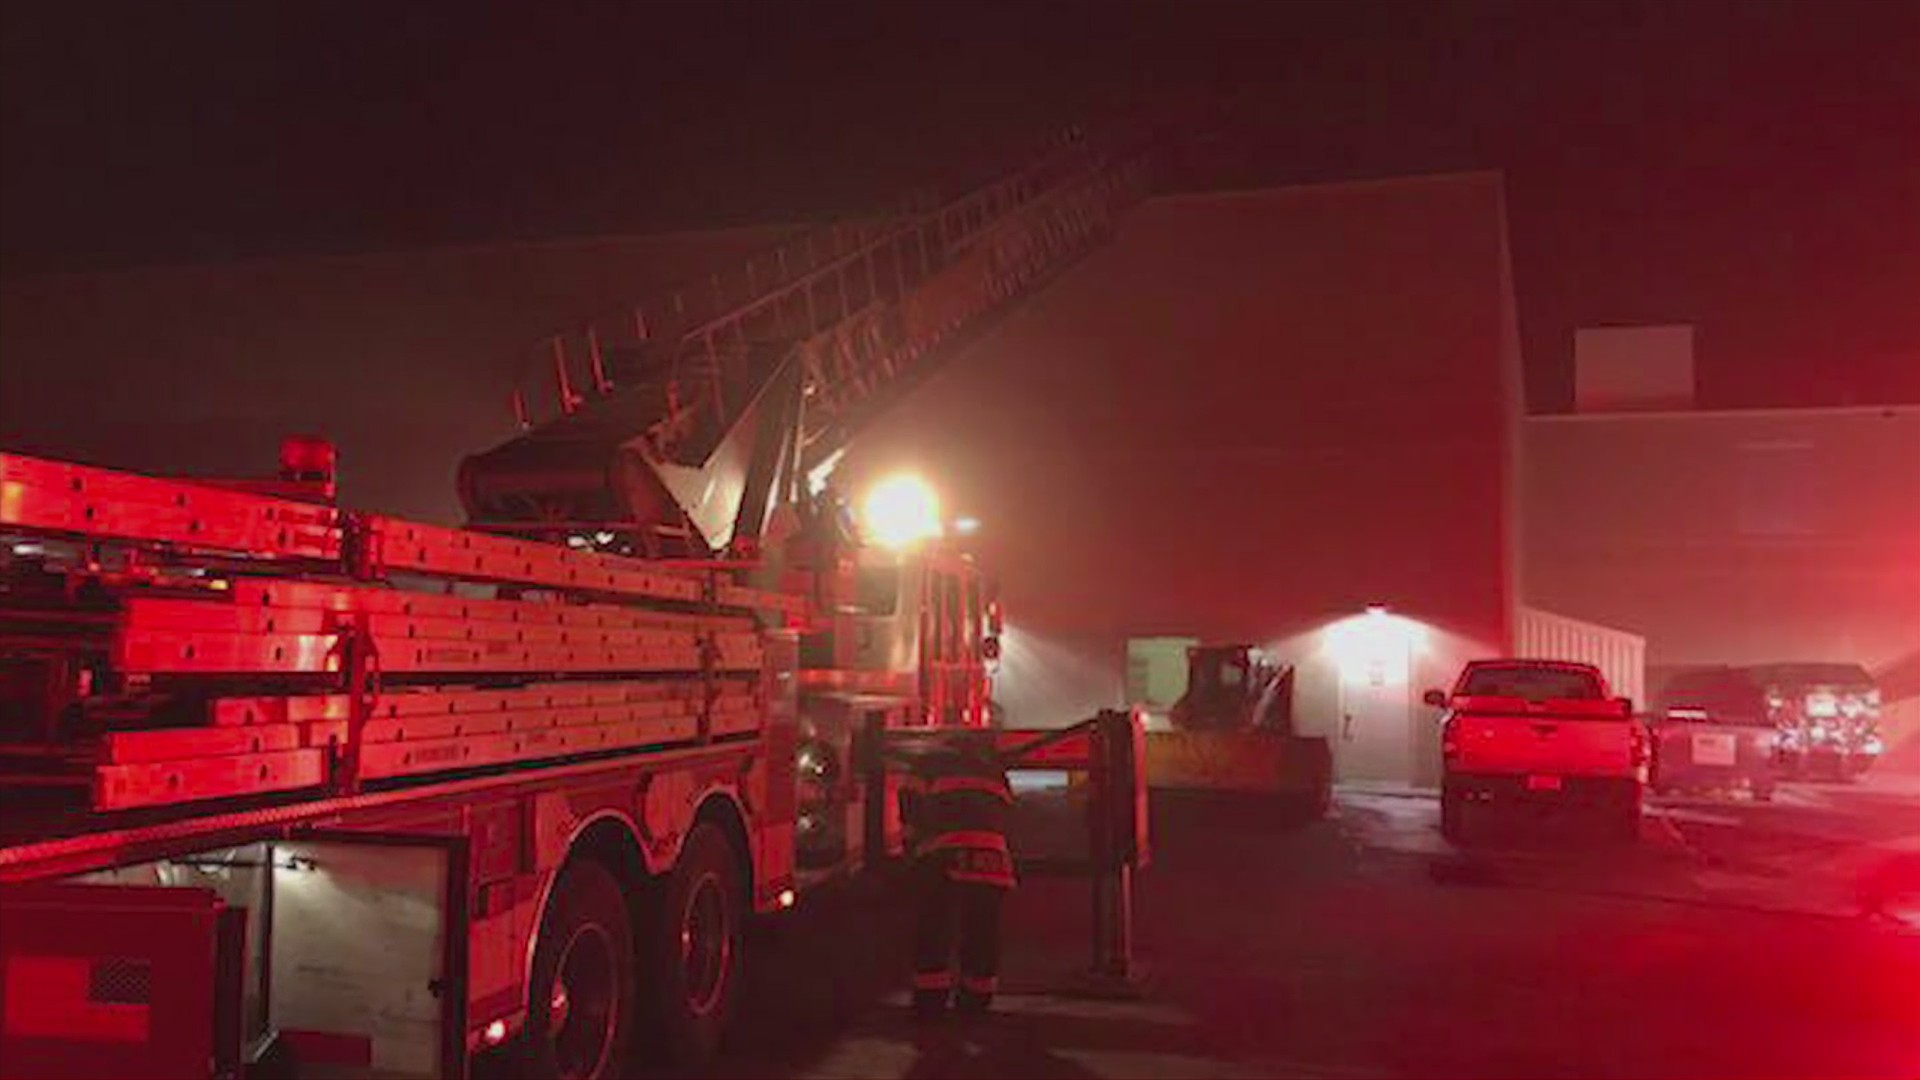 Fire_causes_significant_damage_to_Beloit_0_20190208230439